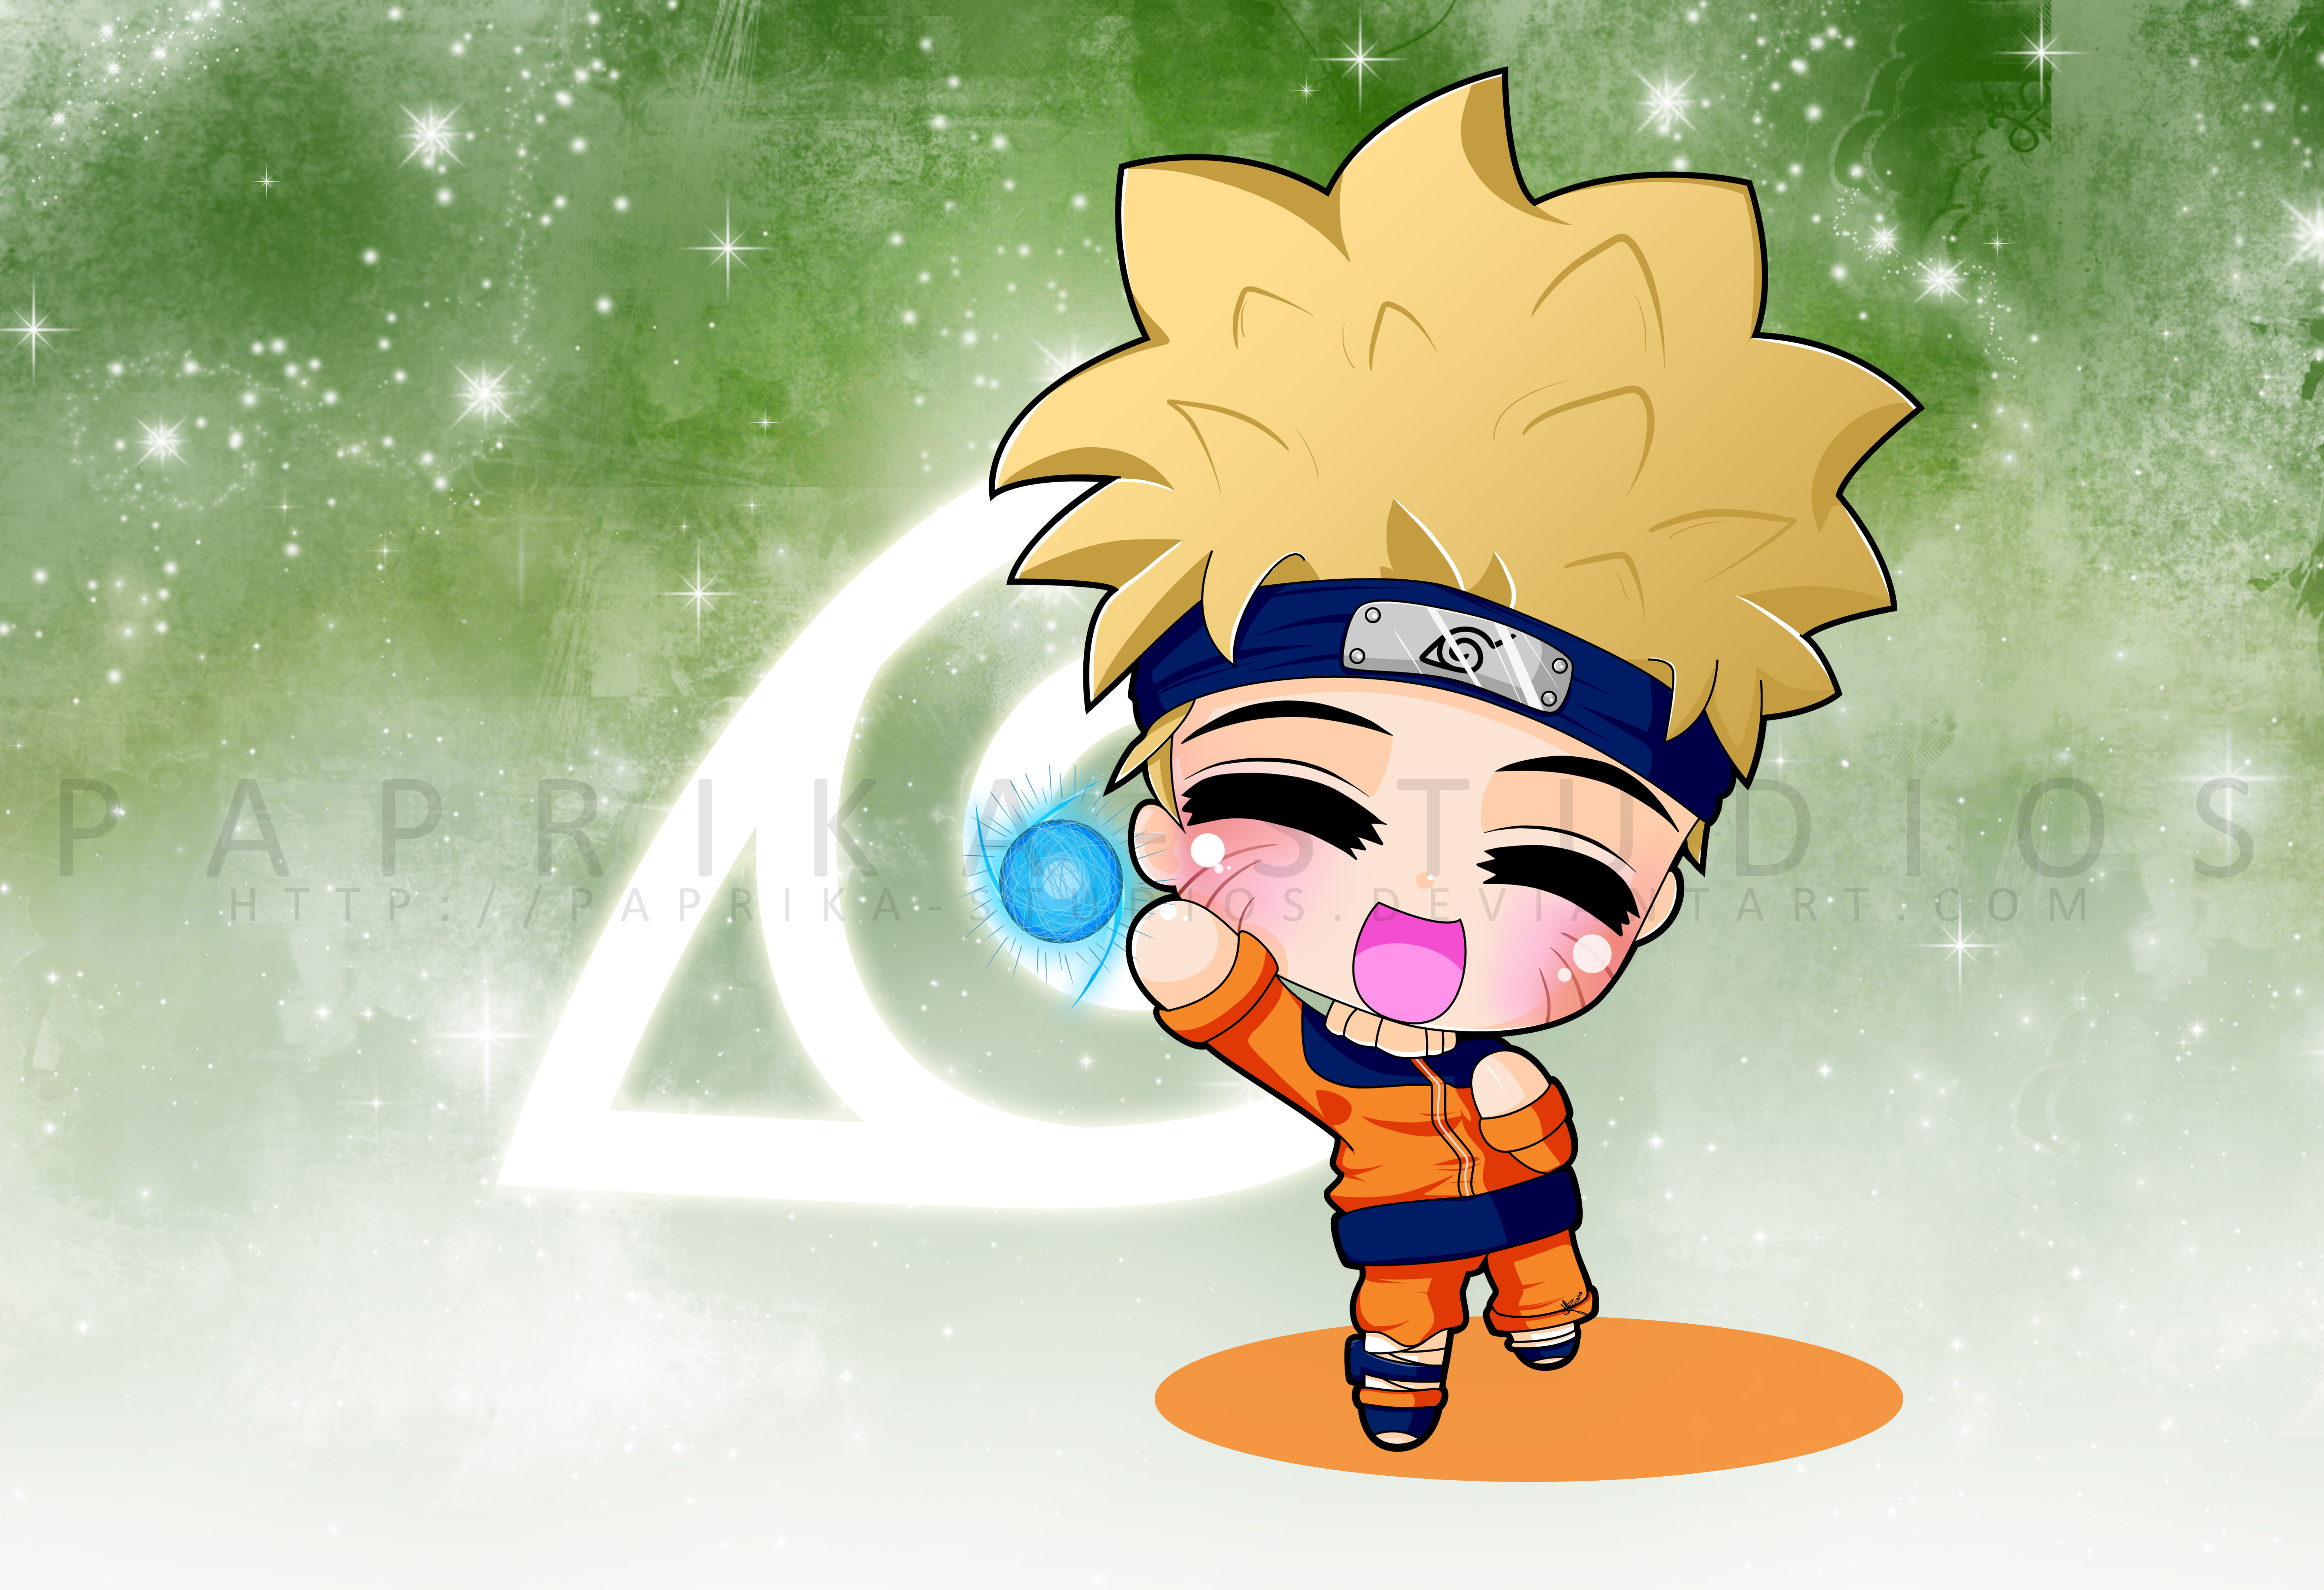 paprikastudios chibi naruto online store powered by storenvy